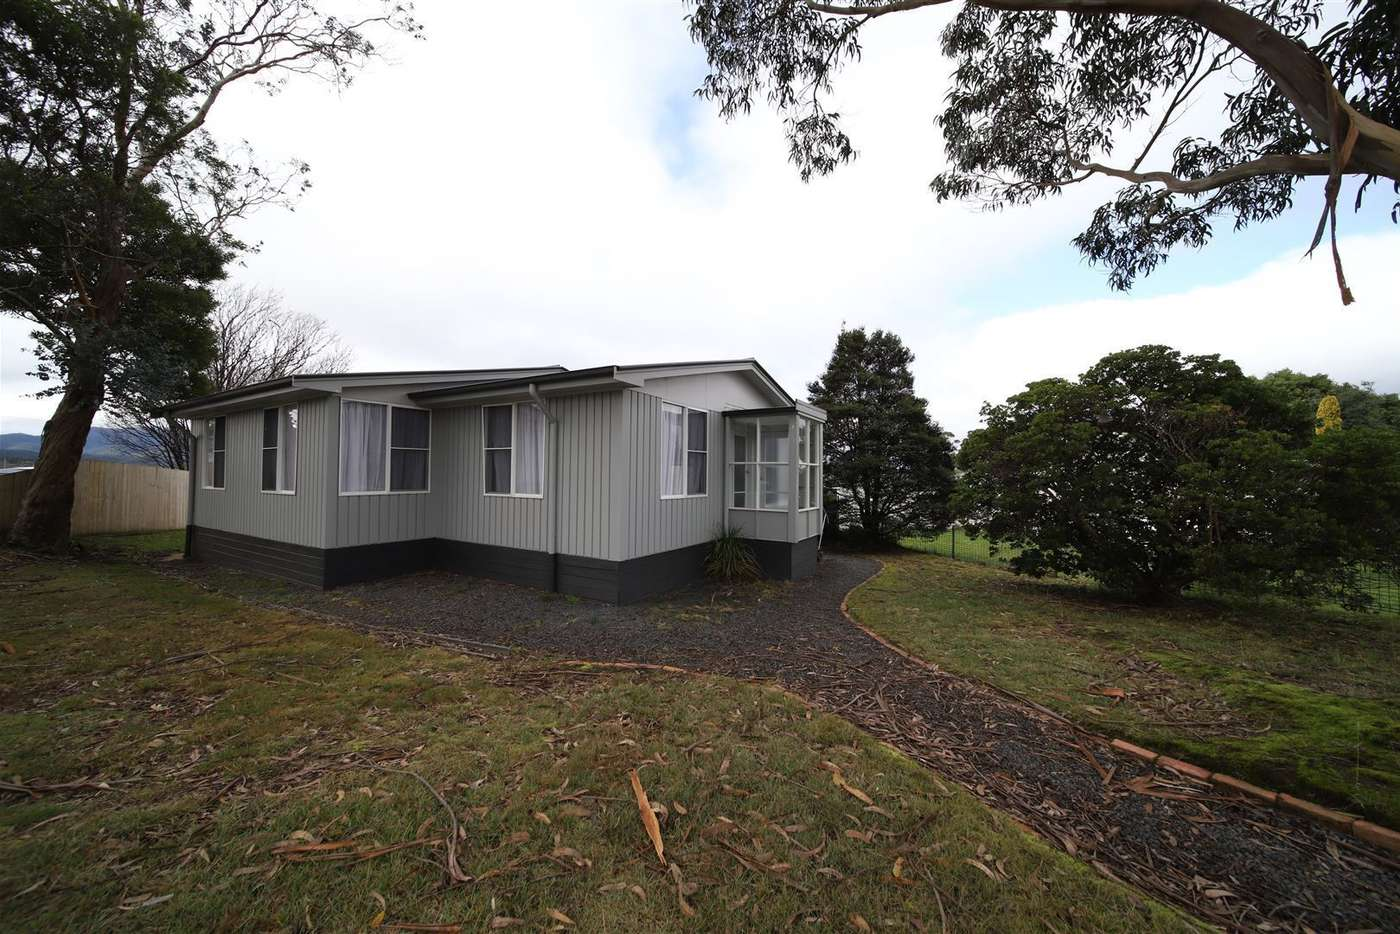 Main view of Homely house listing, 66 Main St, Zeehan TAS 7469